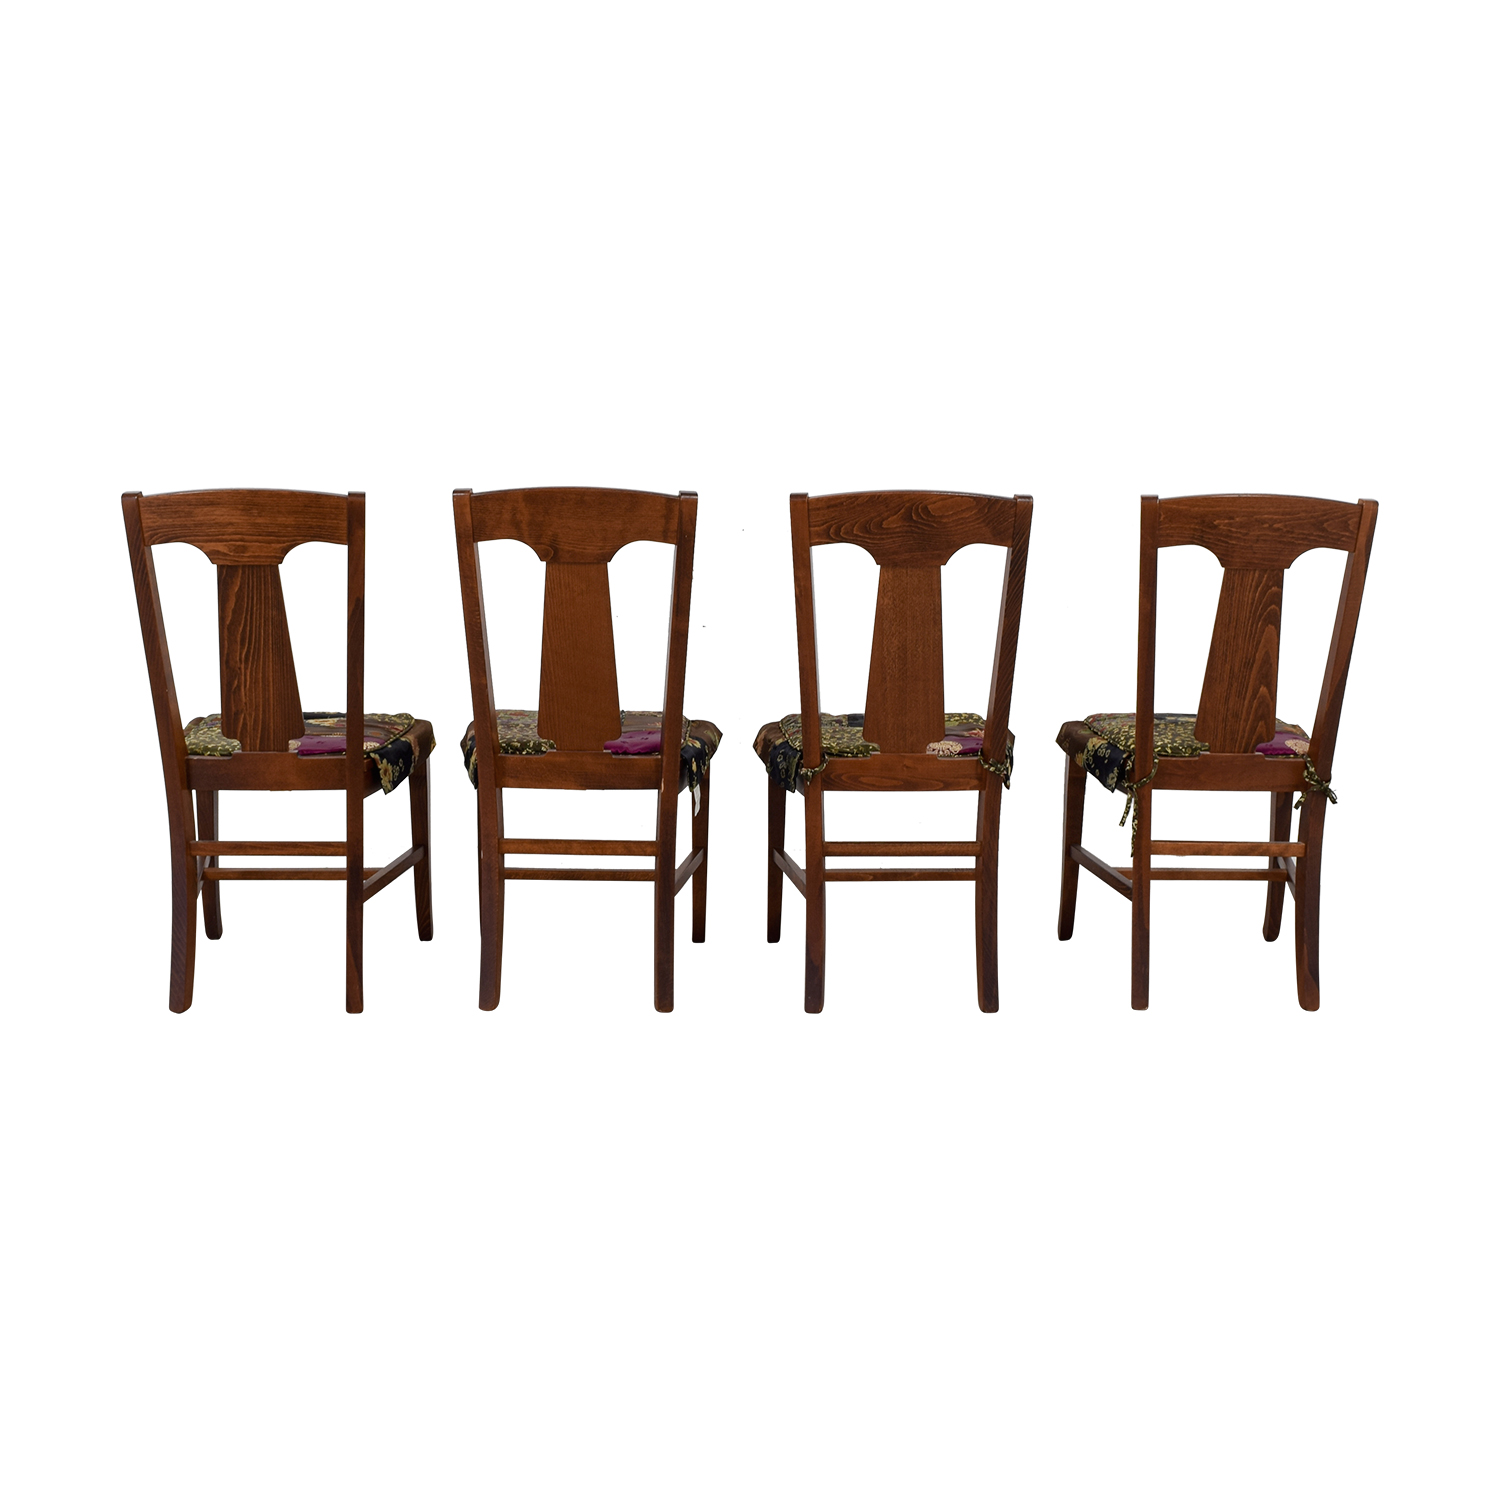 82% OFF - Pottery Barn Pottery Barn Loren Wood Dining Chairs with Fabric  Cushions / Chairs